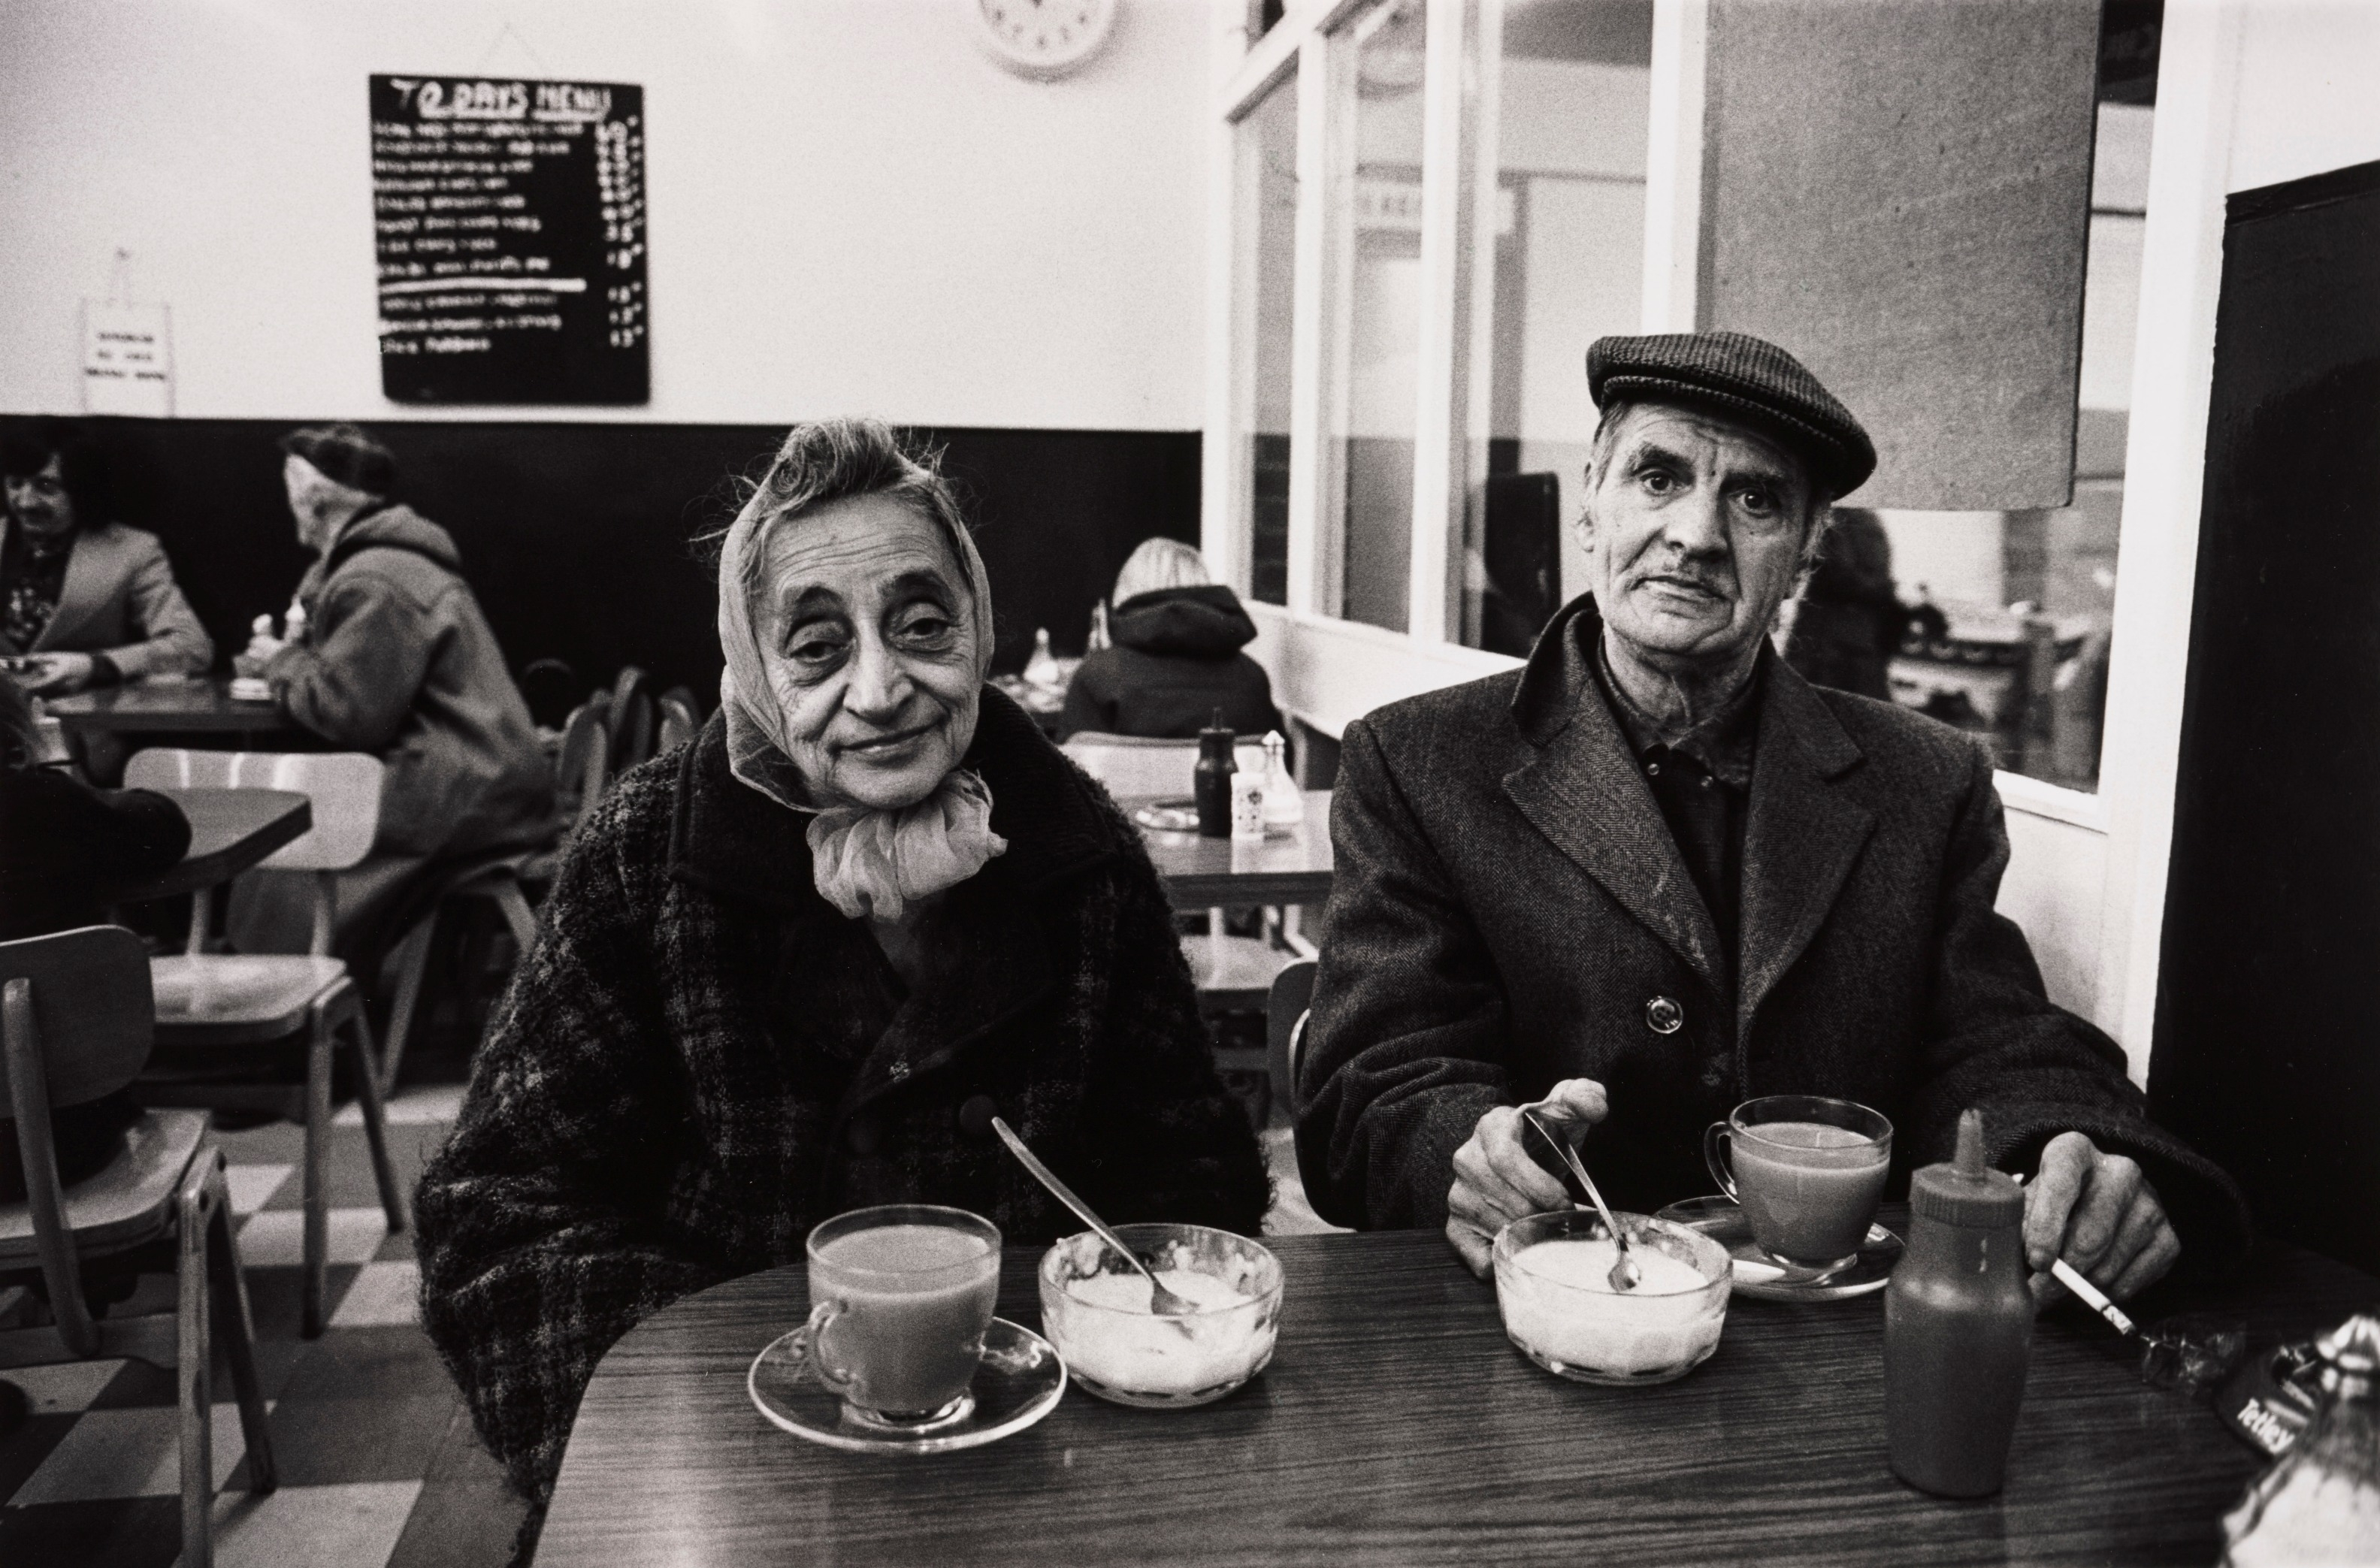 Don McCullin's black and white photographs reveal humanity through difficult times